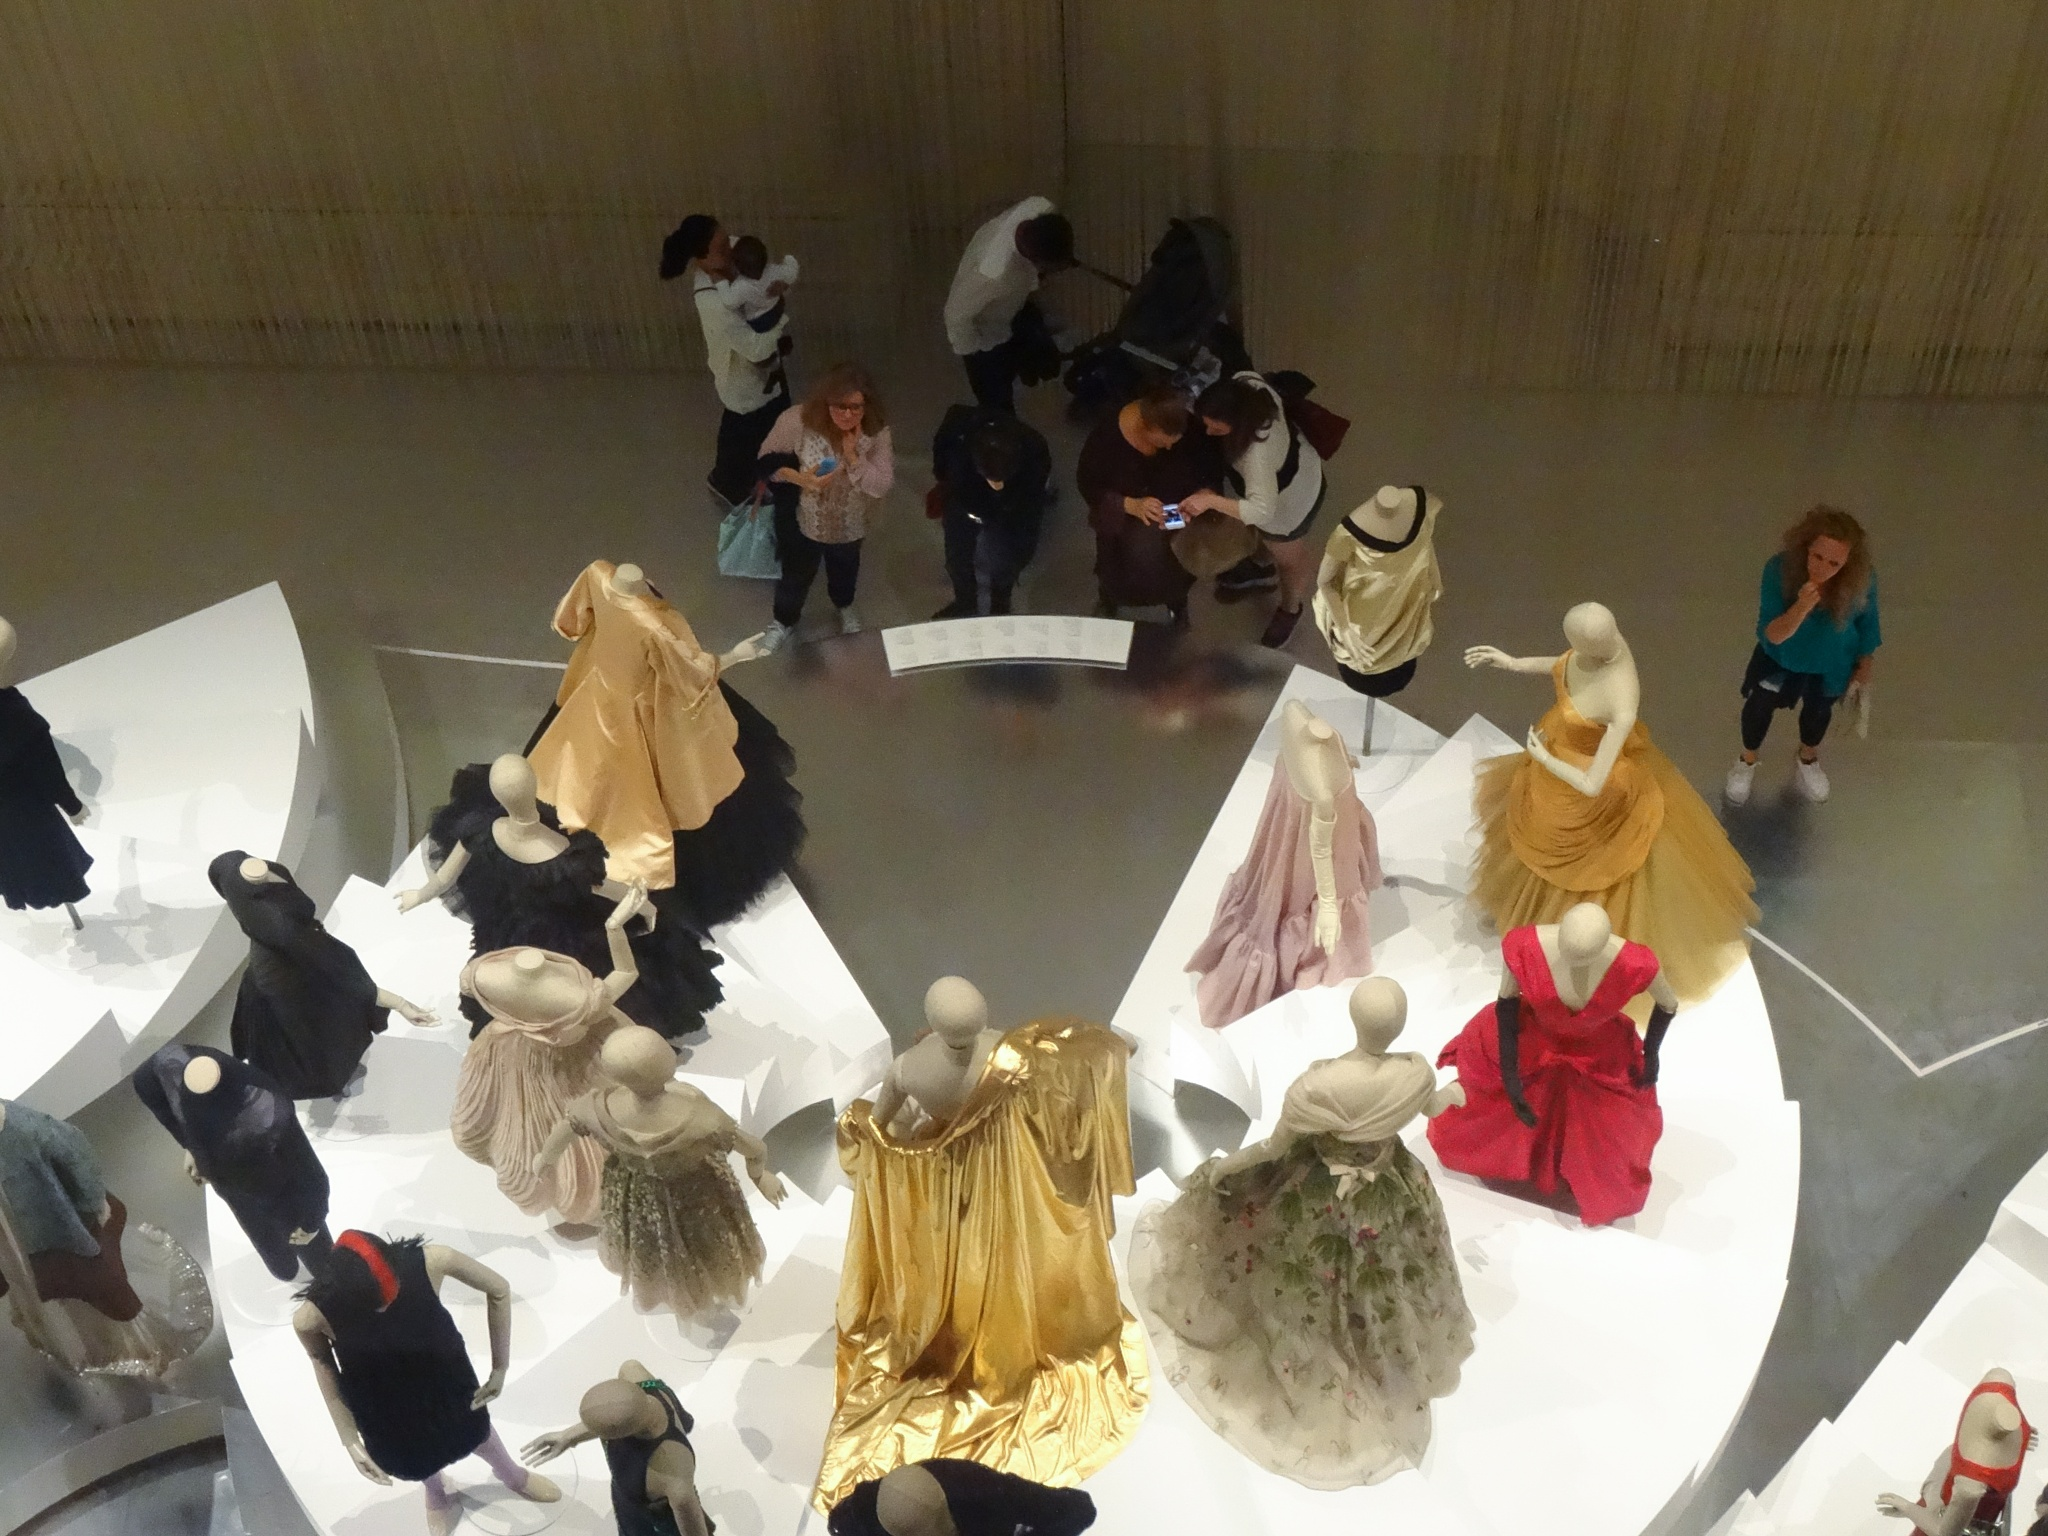 300 Years of Fashion by Carolyn Chase